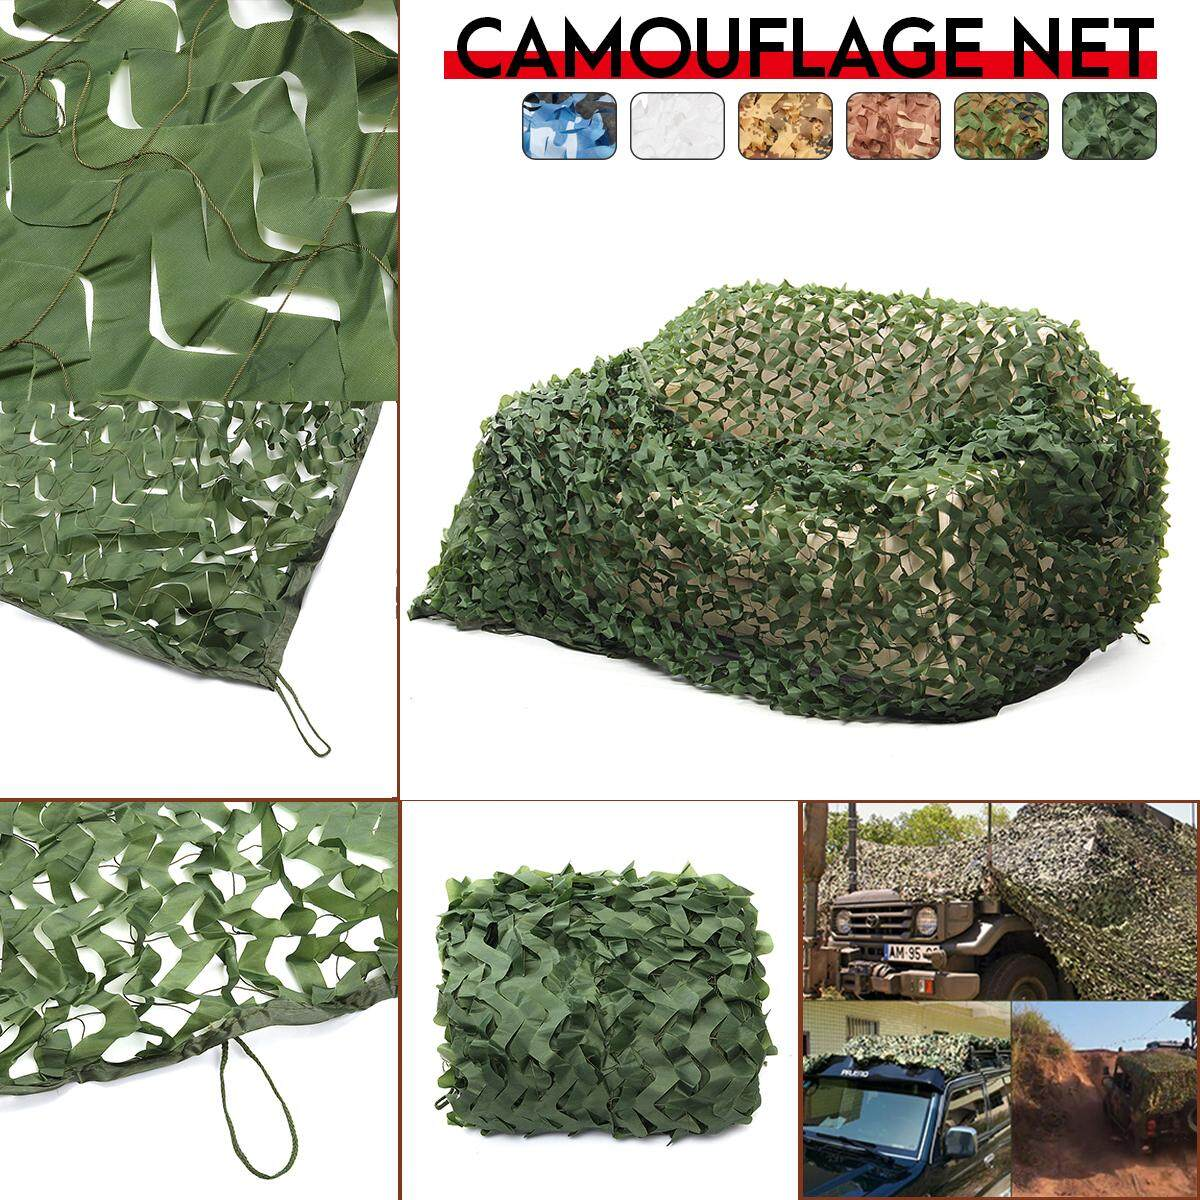 150d 120g Polyester Oxford Fabric Pet Fibre Camouflage Camo Net Netting Hunting Sun Shade Car Cover By Audew.